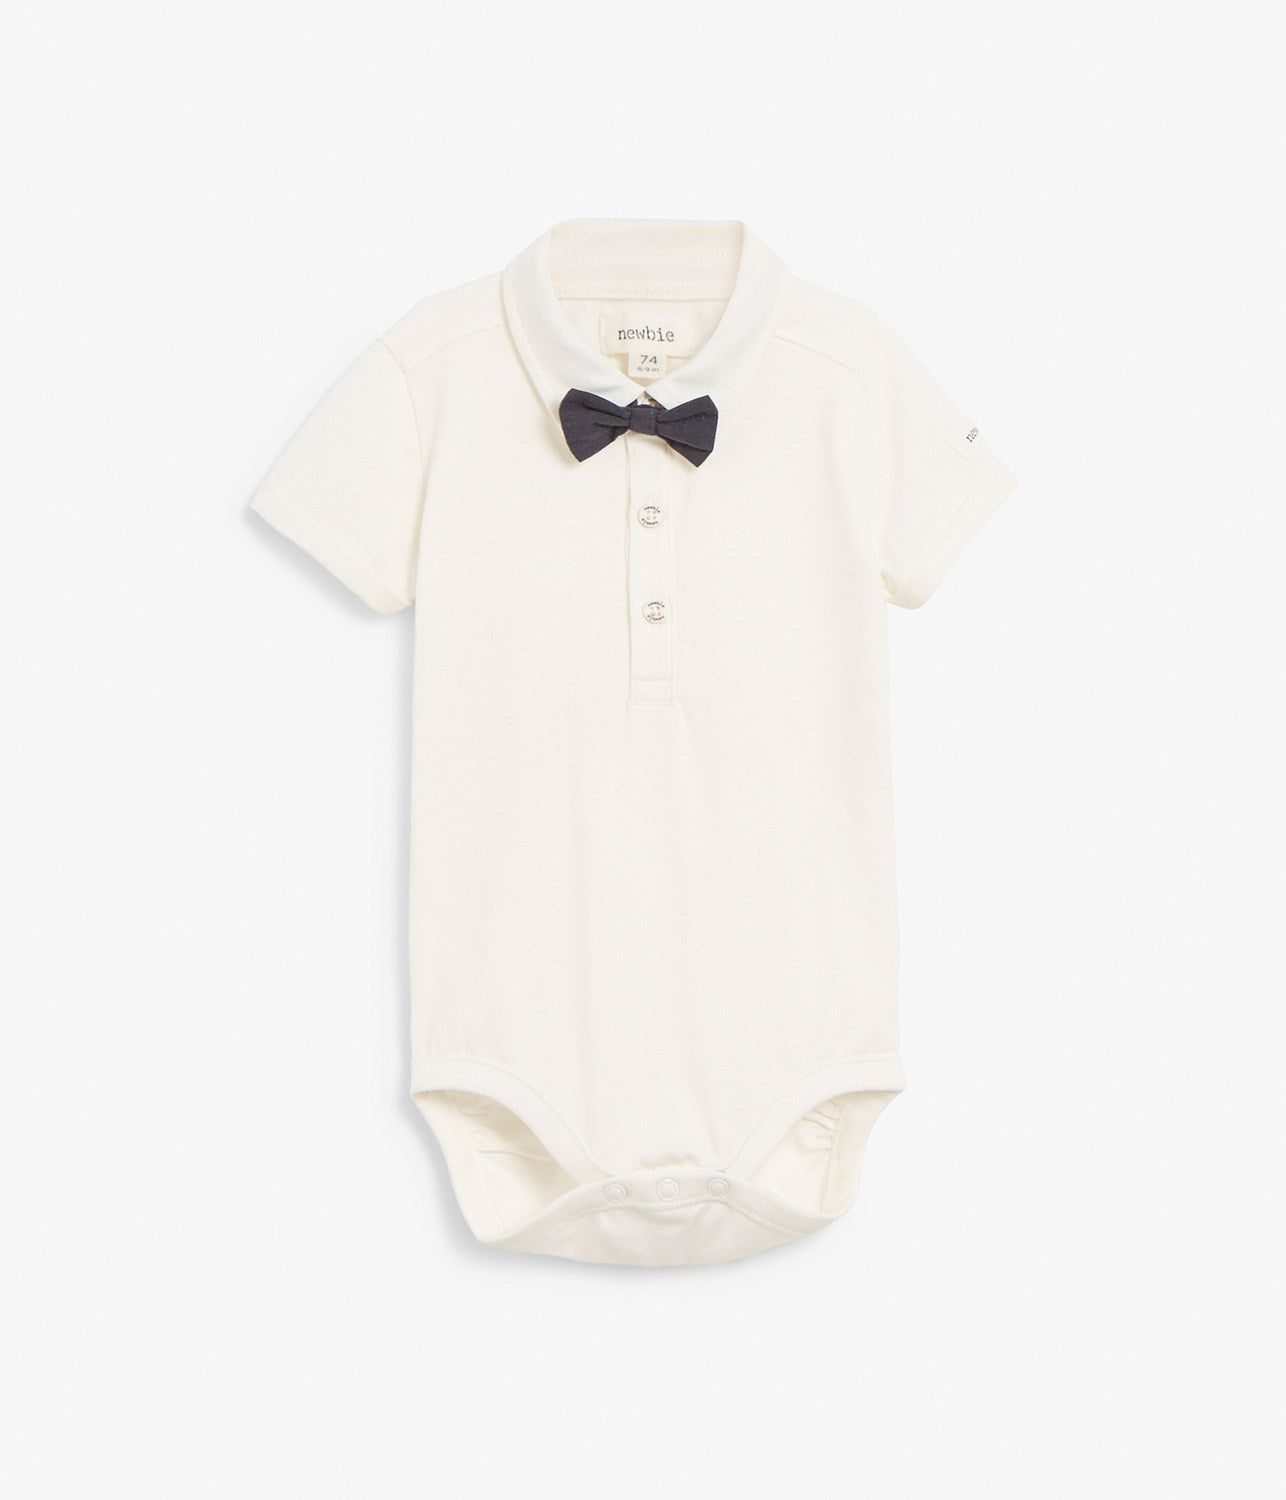 Baby body with bow tie